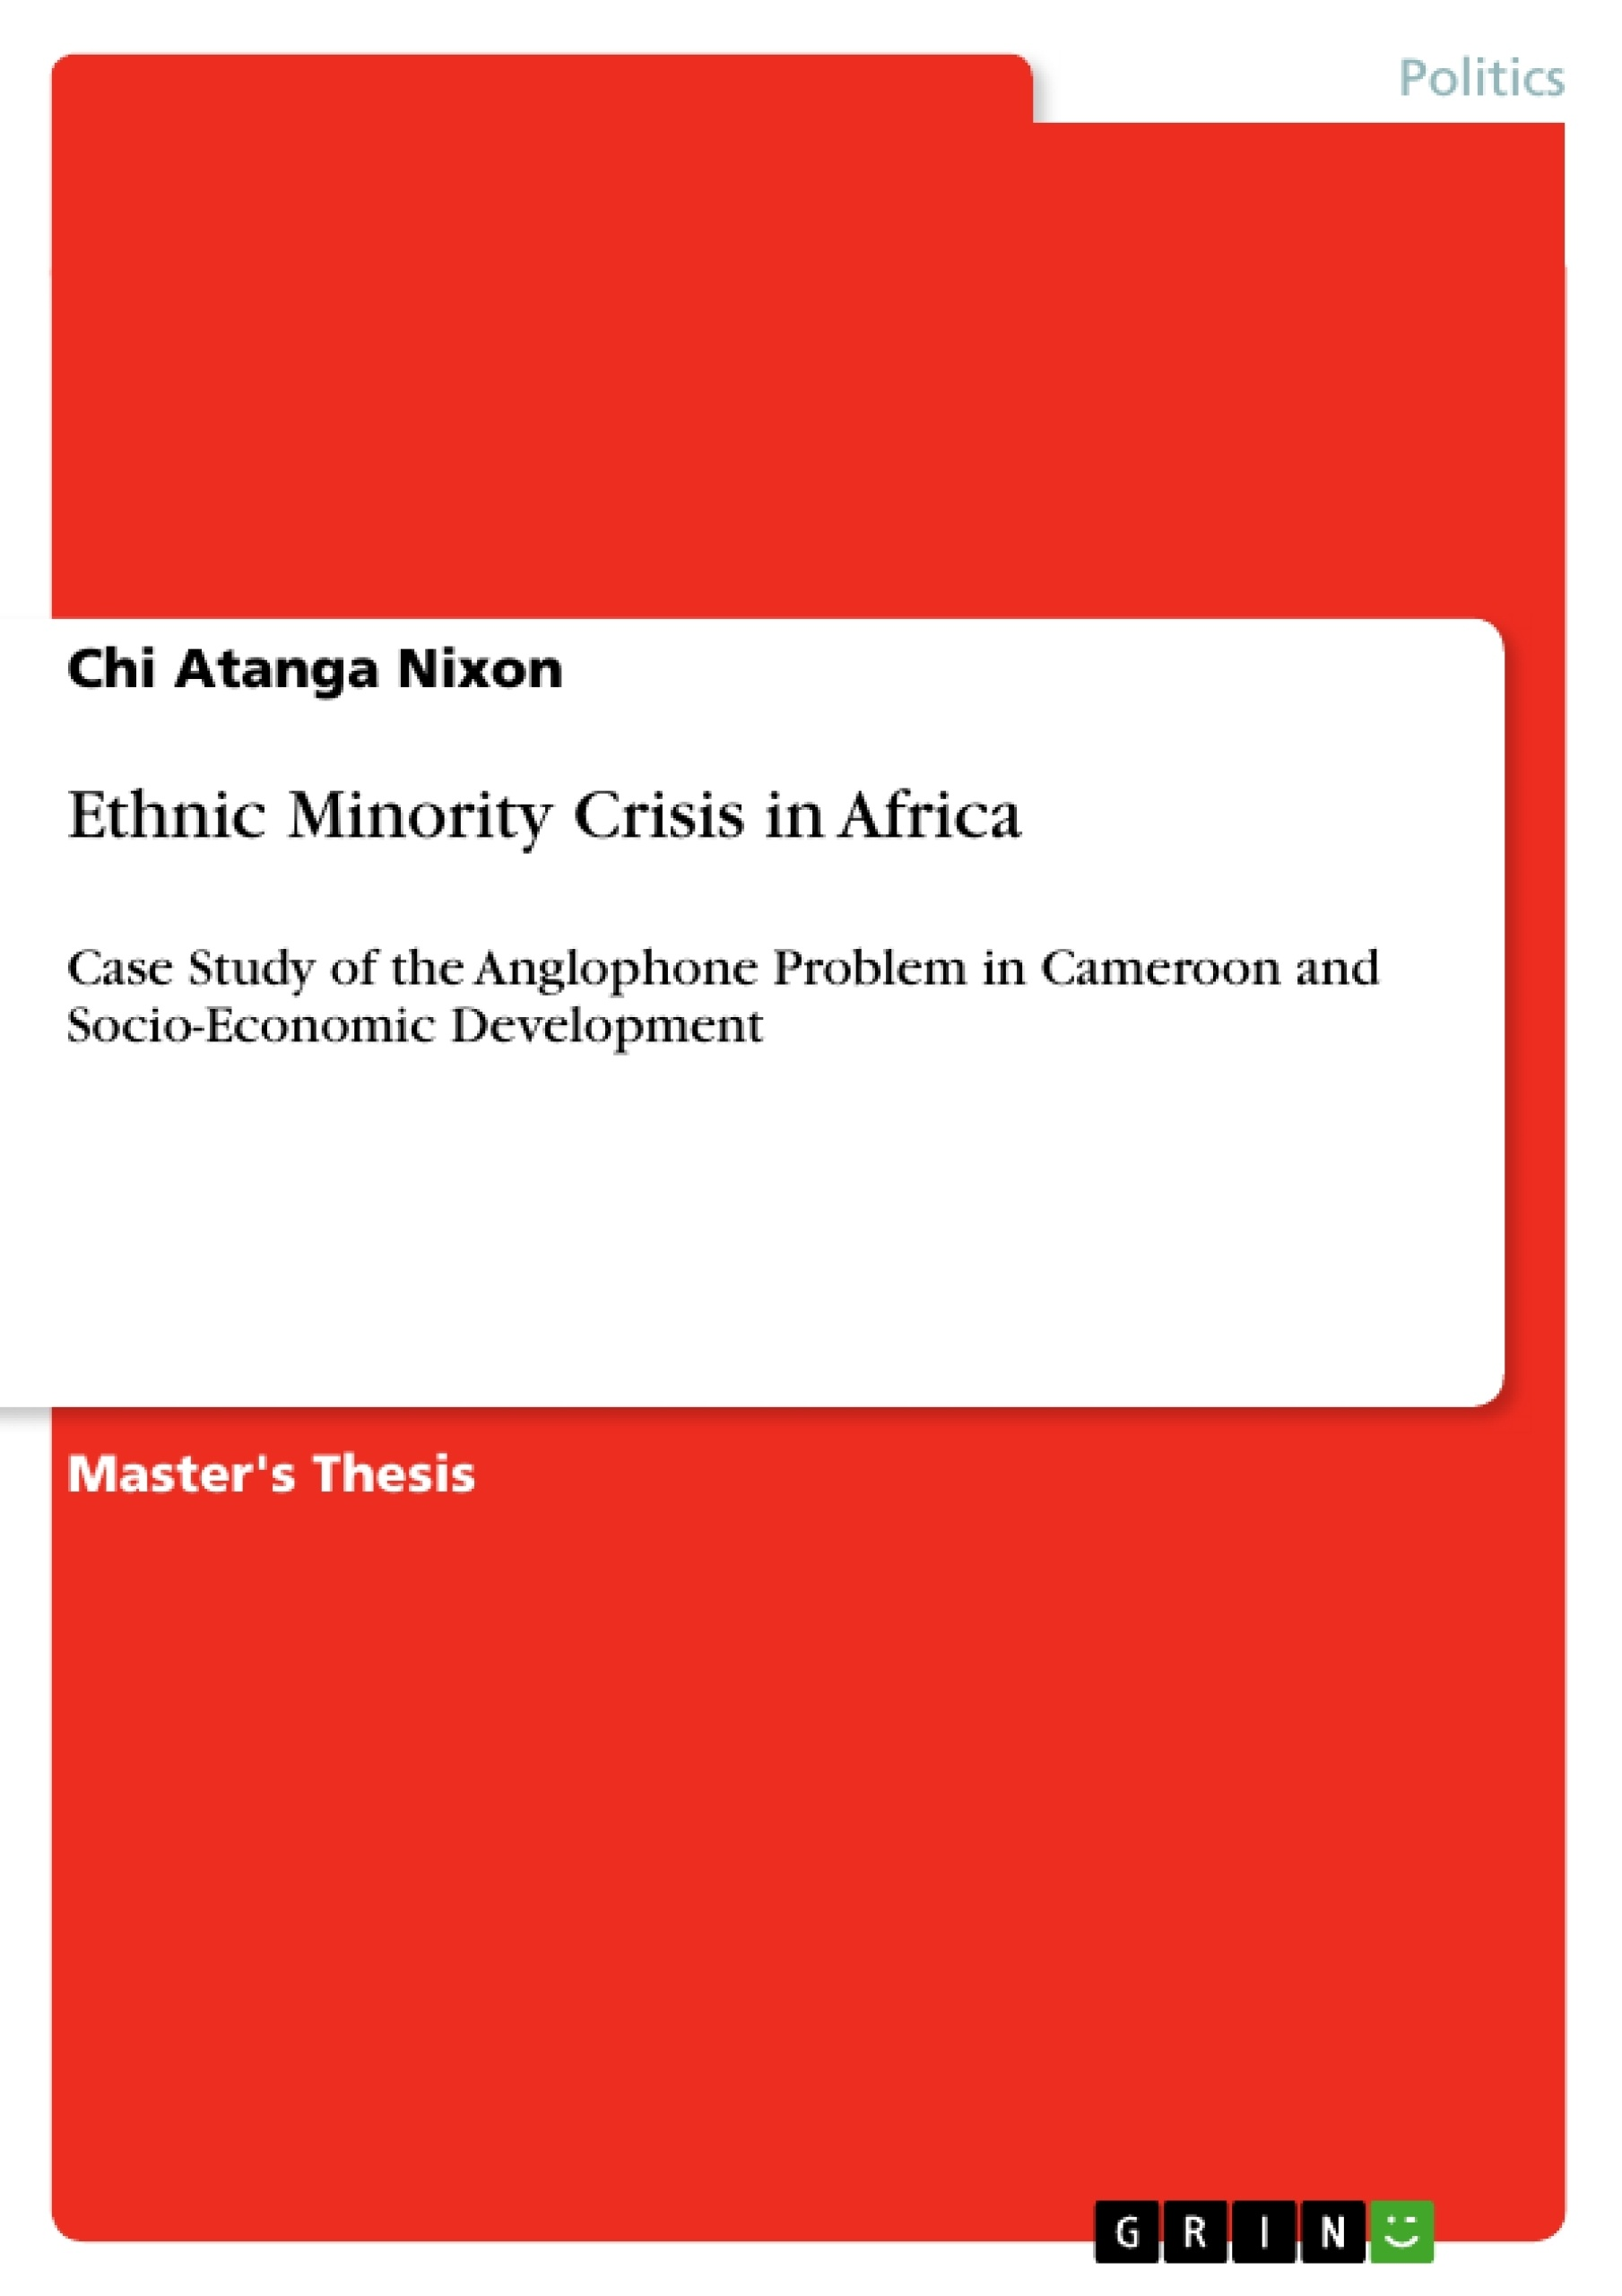 Ethnic Minority Crisis In Africa Publish Your Master's Thesis